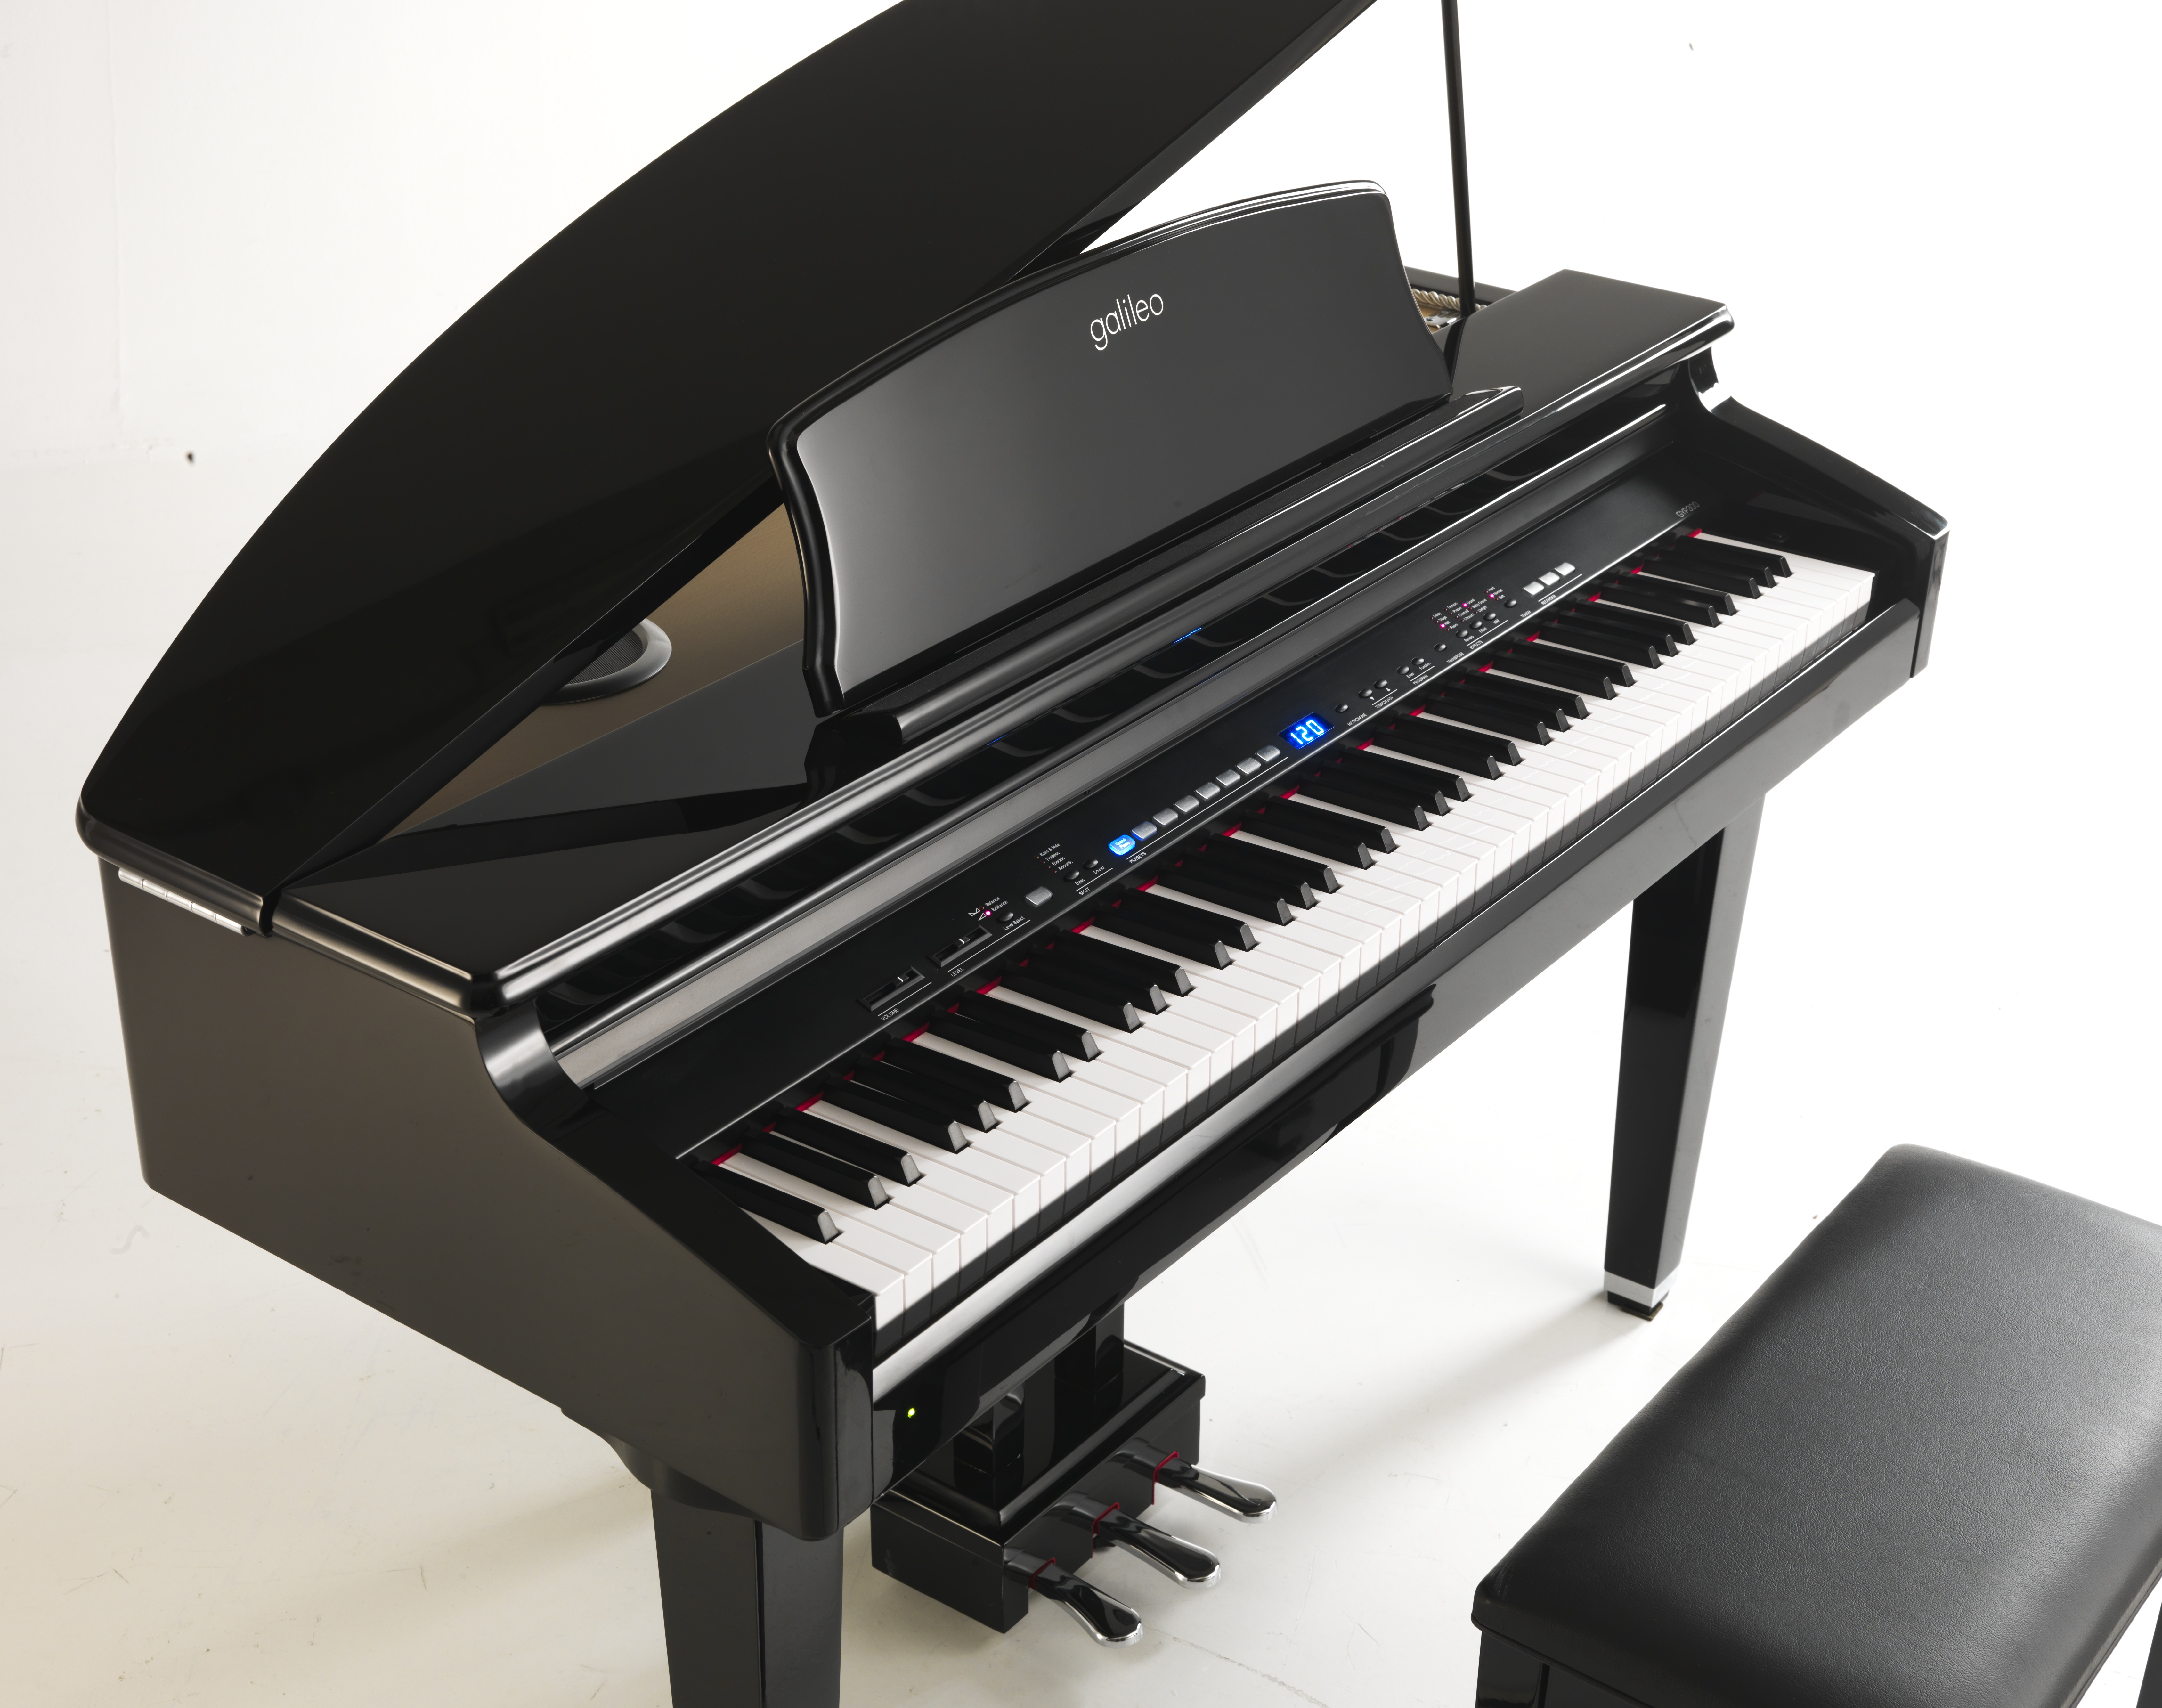 galileo pianos digital pianos in grand vertical and portable offerings from italian piano. Black Bedroom Furniture Sets. Home Design Ideas